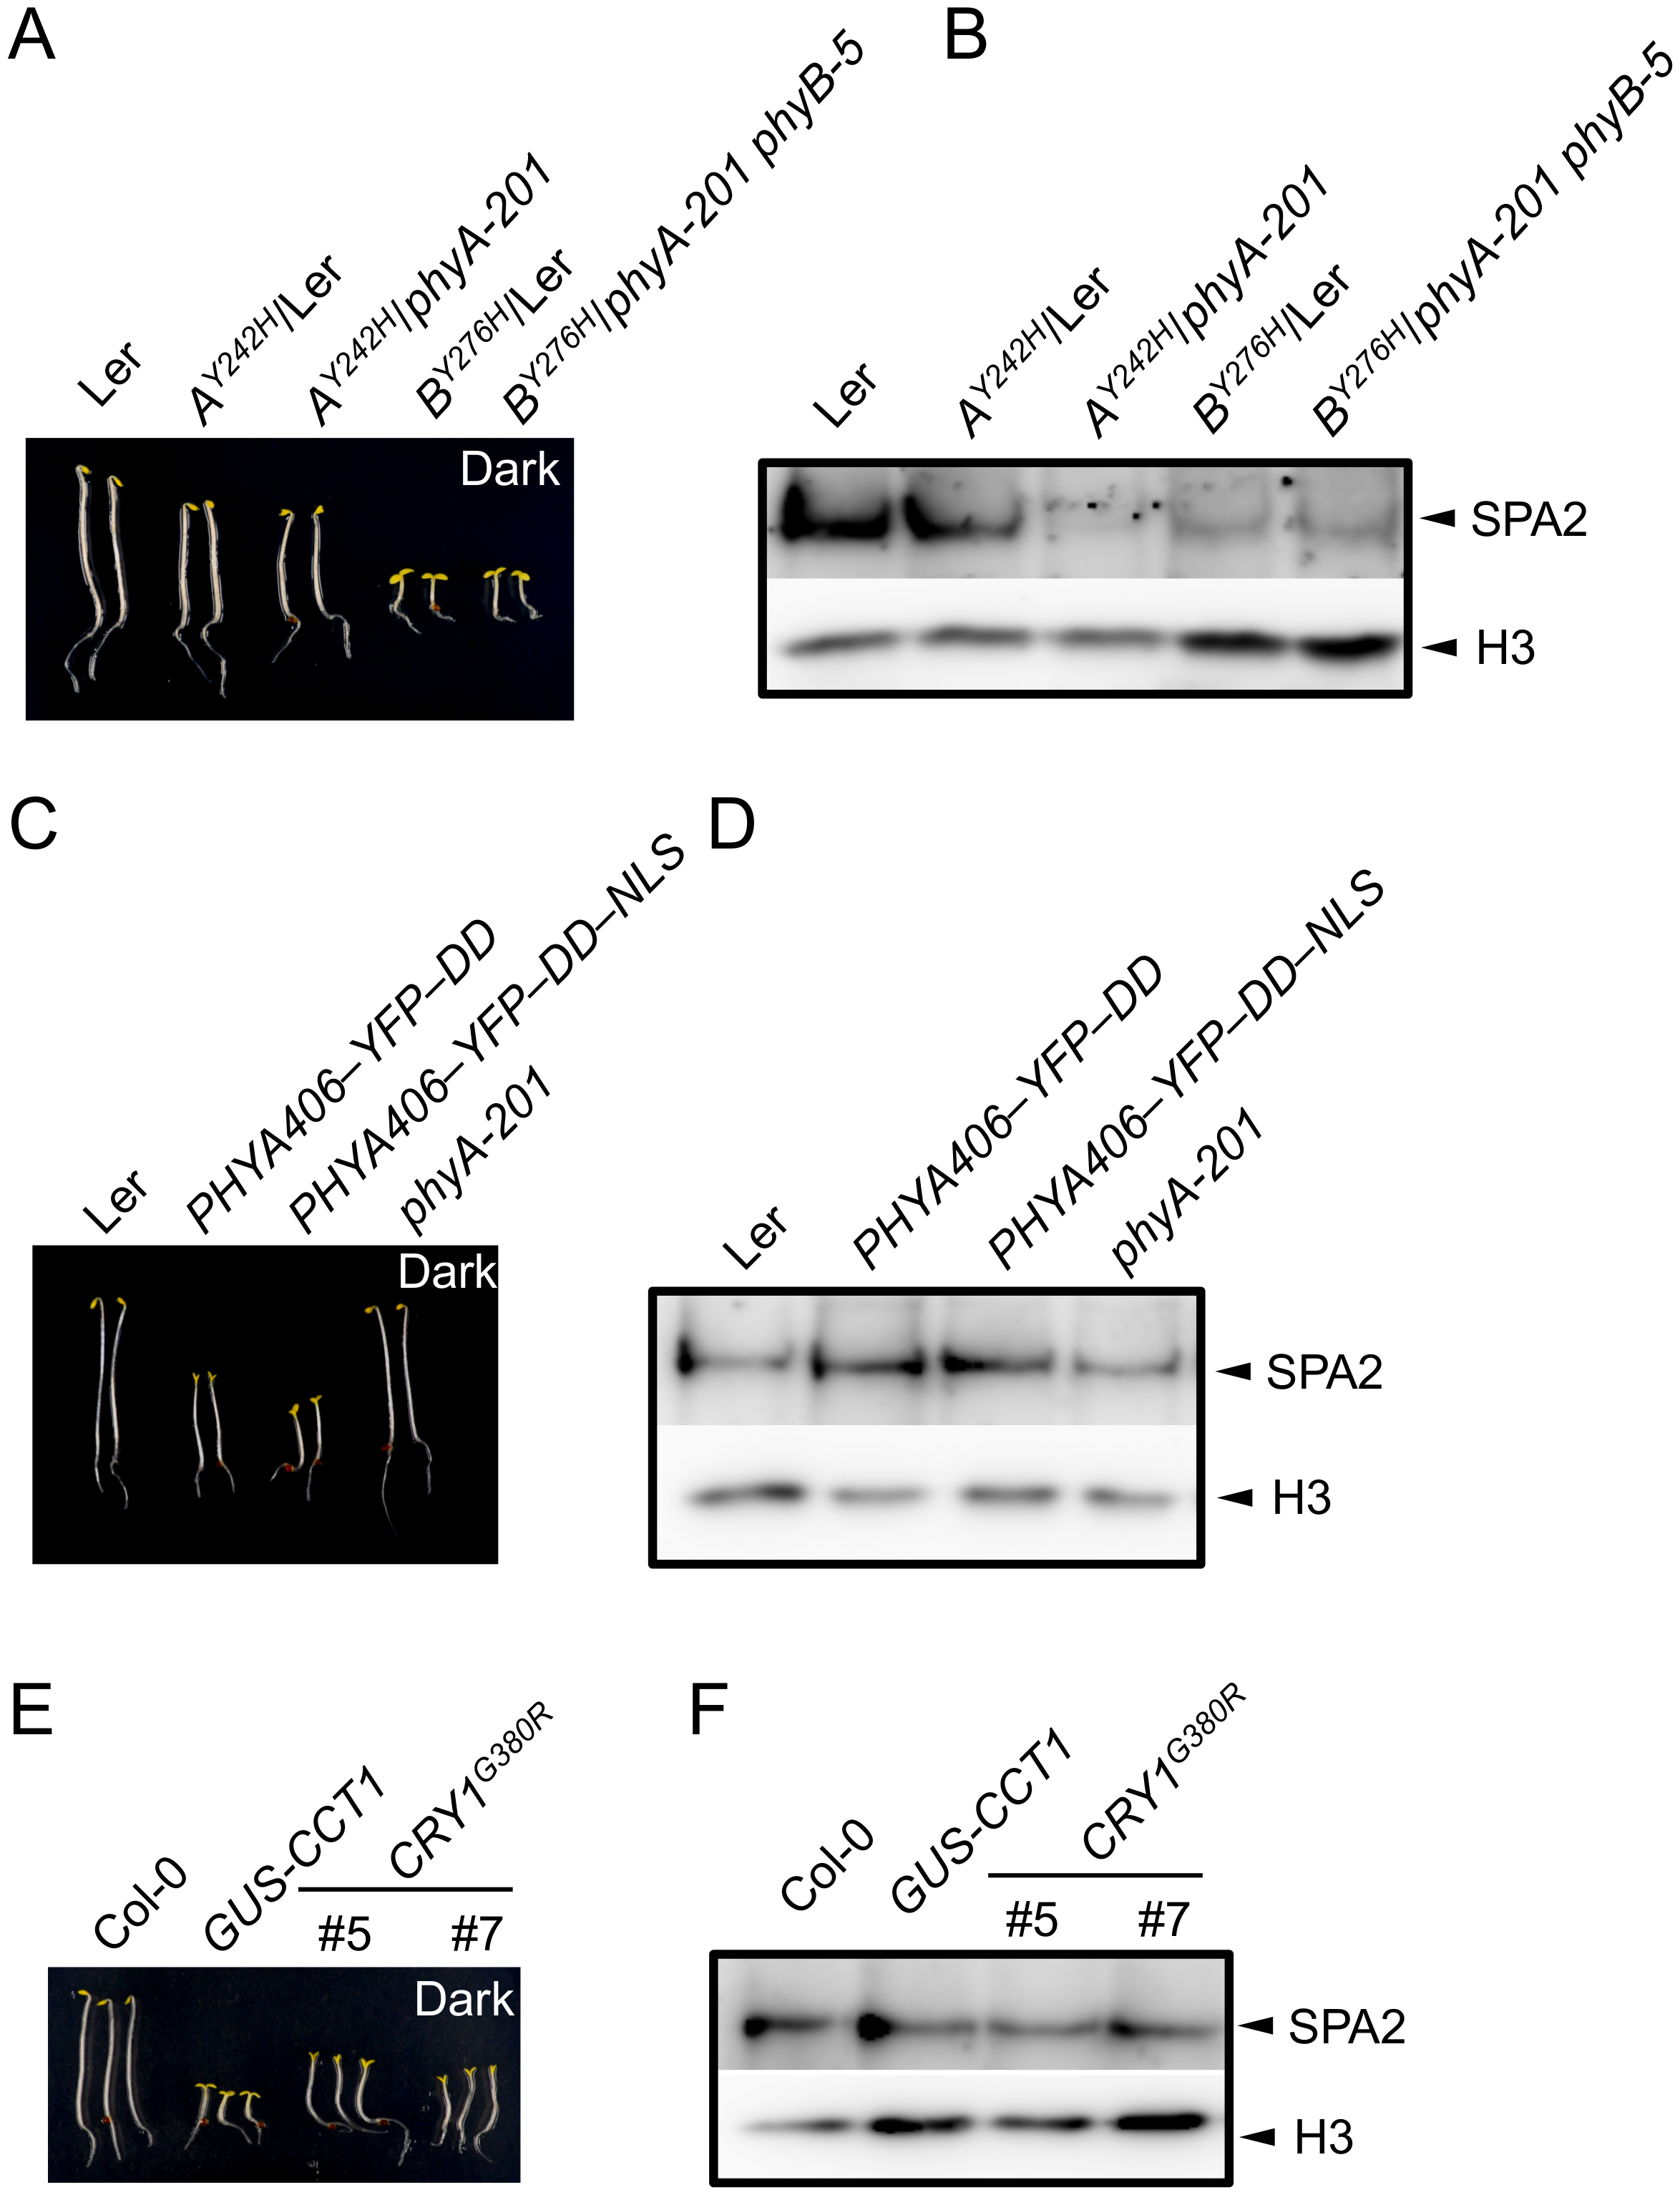 SPA2 protein levels in transgenic seedlings expressing constitutively active photoreceptors.